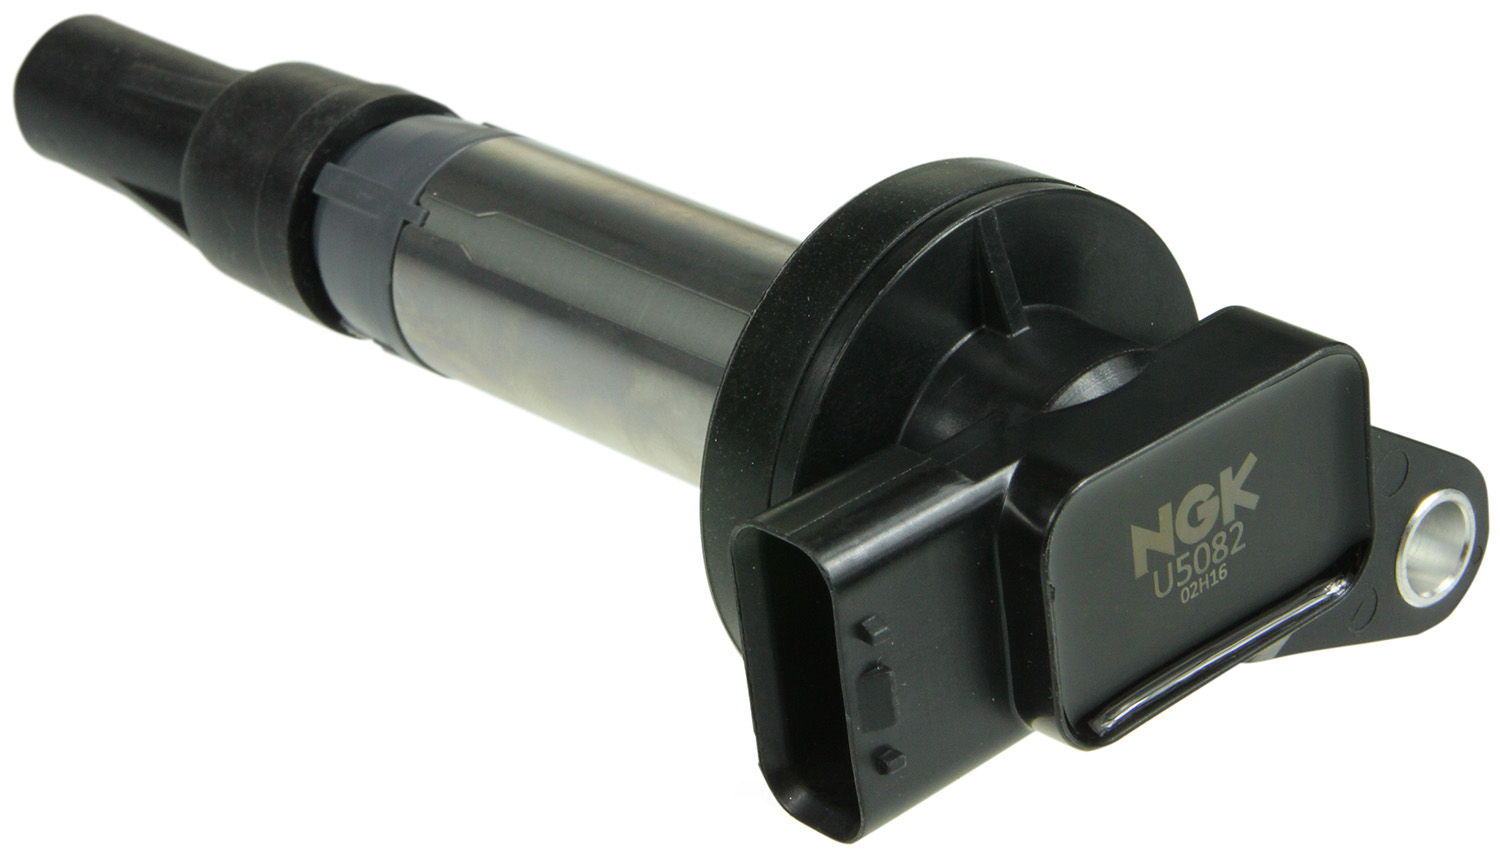 NGK USA STOCK NUMBERS - Ngk Cop(pencil Type) Ignition Coil - NGK 48927